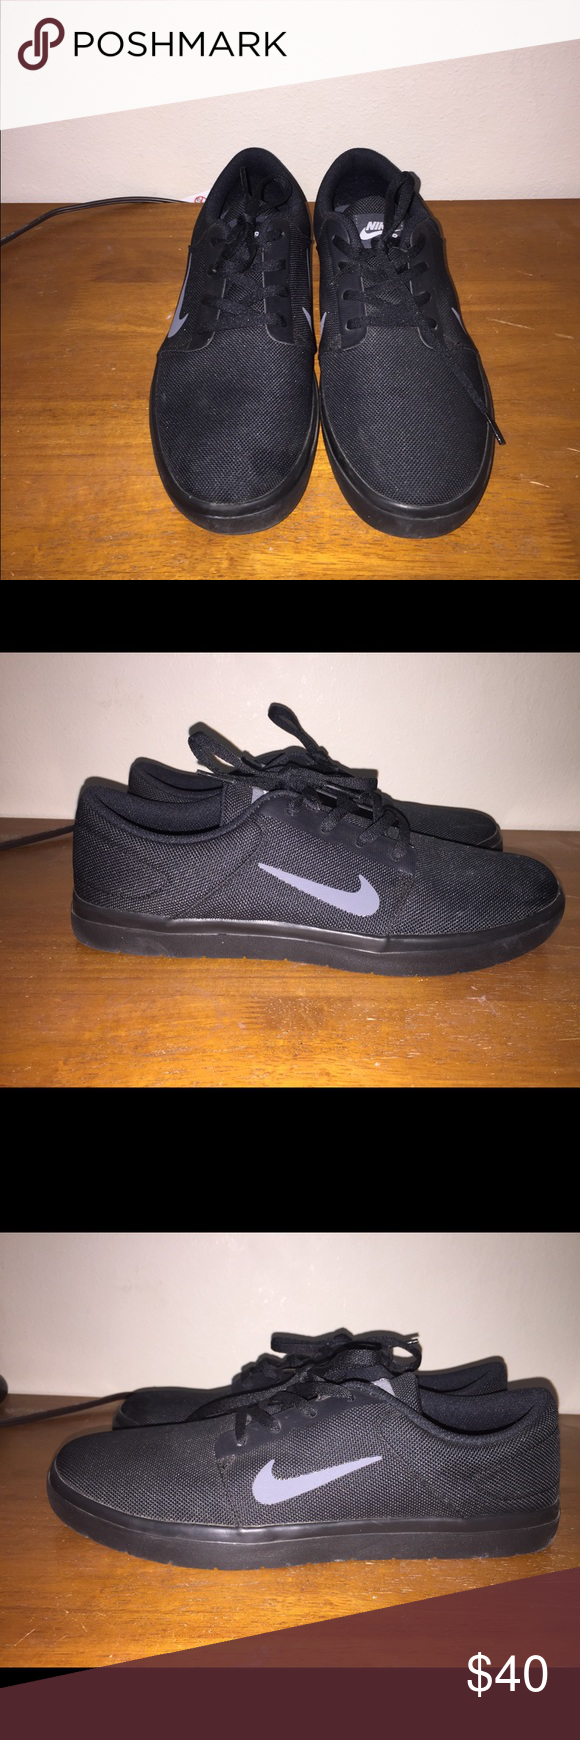 Size 10 men's SB Nike shoes Size 10 Nike men SB shoes Shoes only been used  twice price tag are still on Shoes does not contain any rips box also  doesn't ...